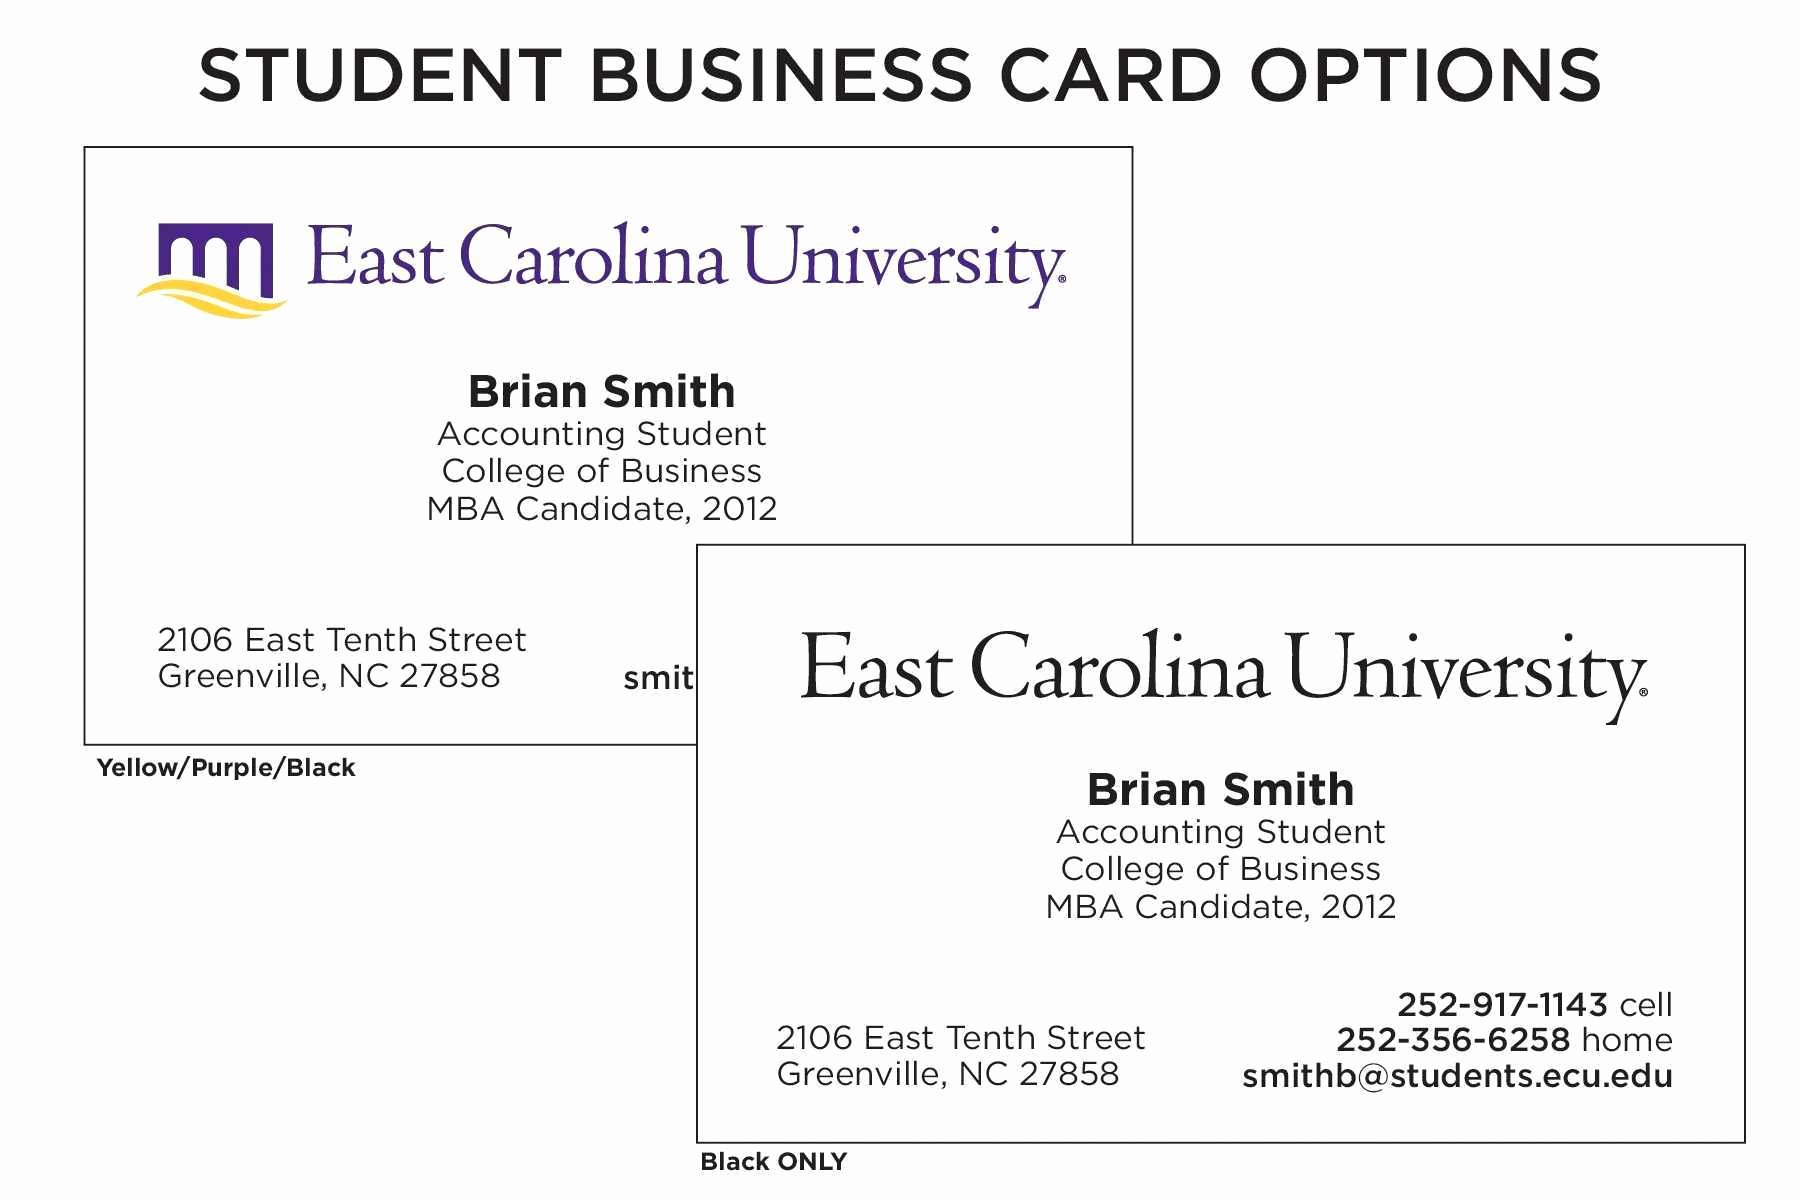 Student Business Cards Template Awesome Student Business Cards Inspirational Student Business Card